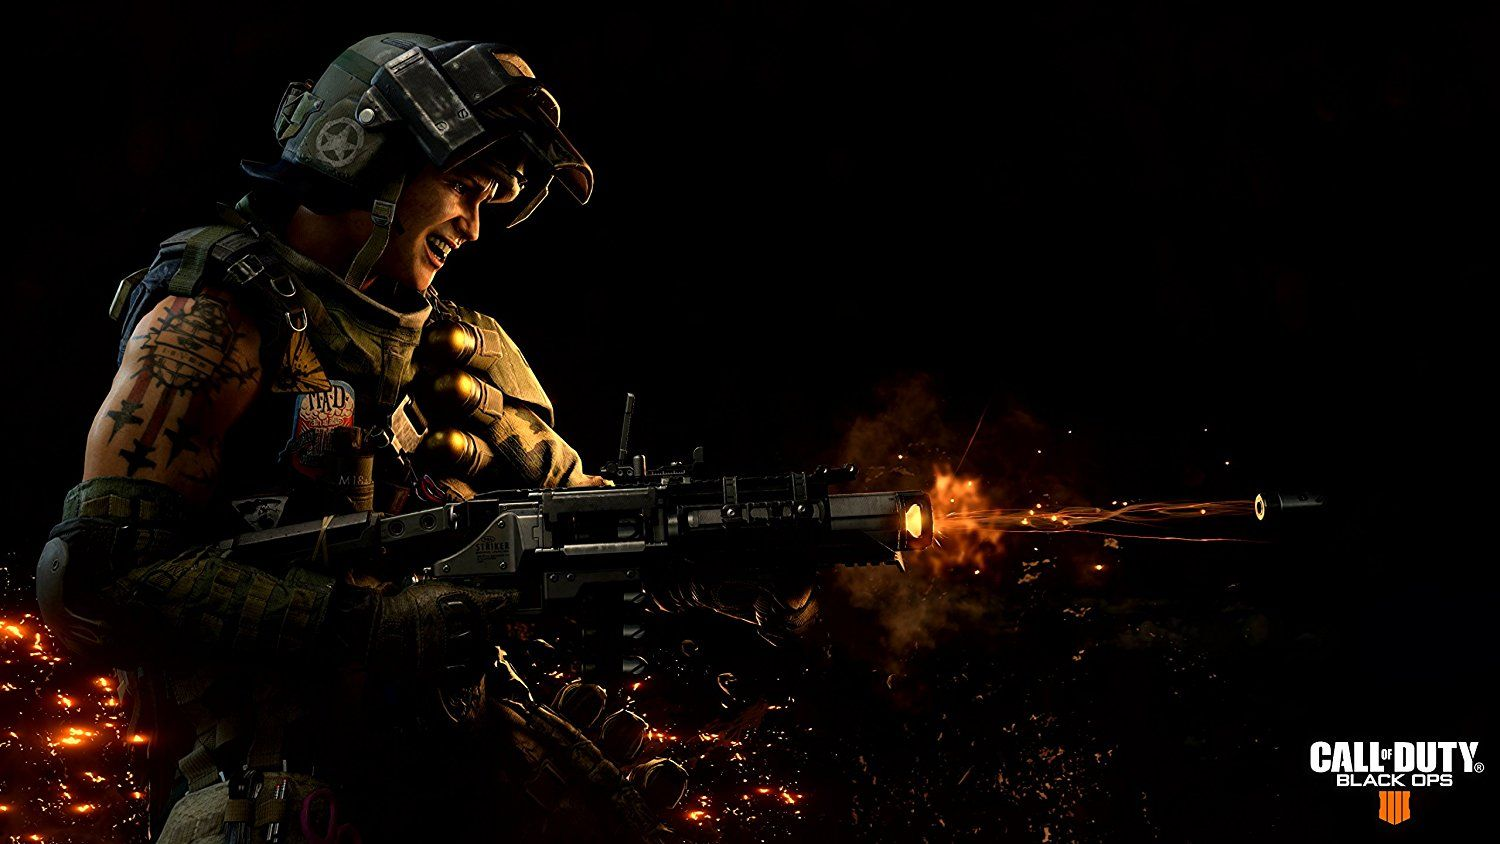 Call of Duty: Black Ops 4 - Pro Edition (PC) - 3